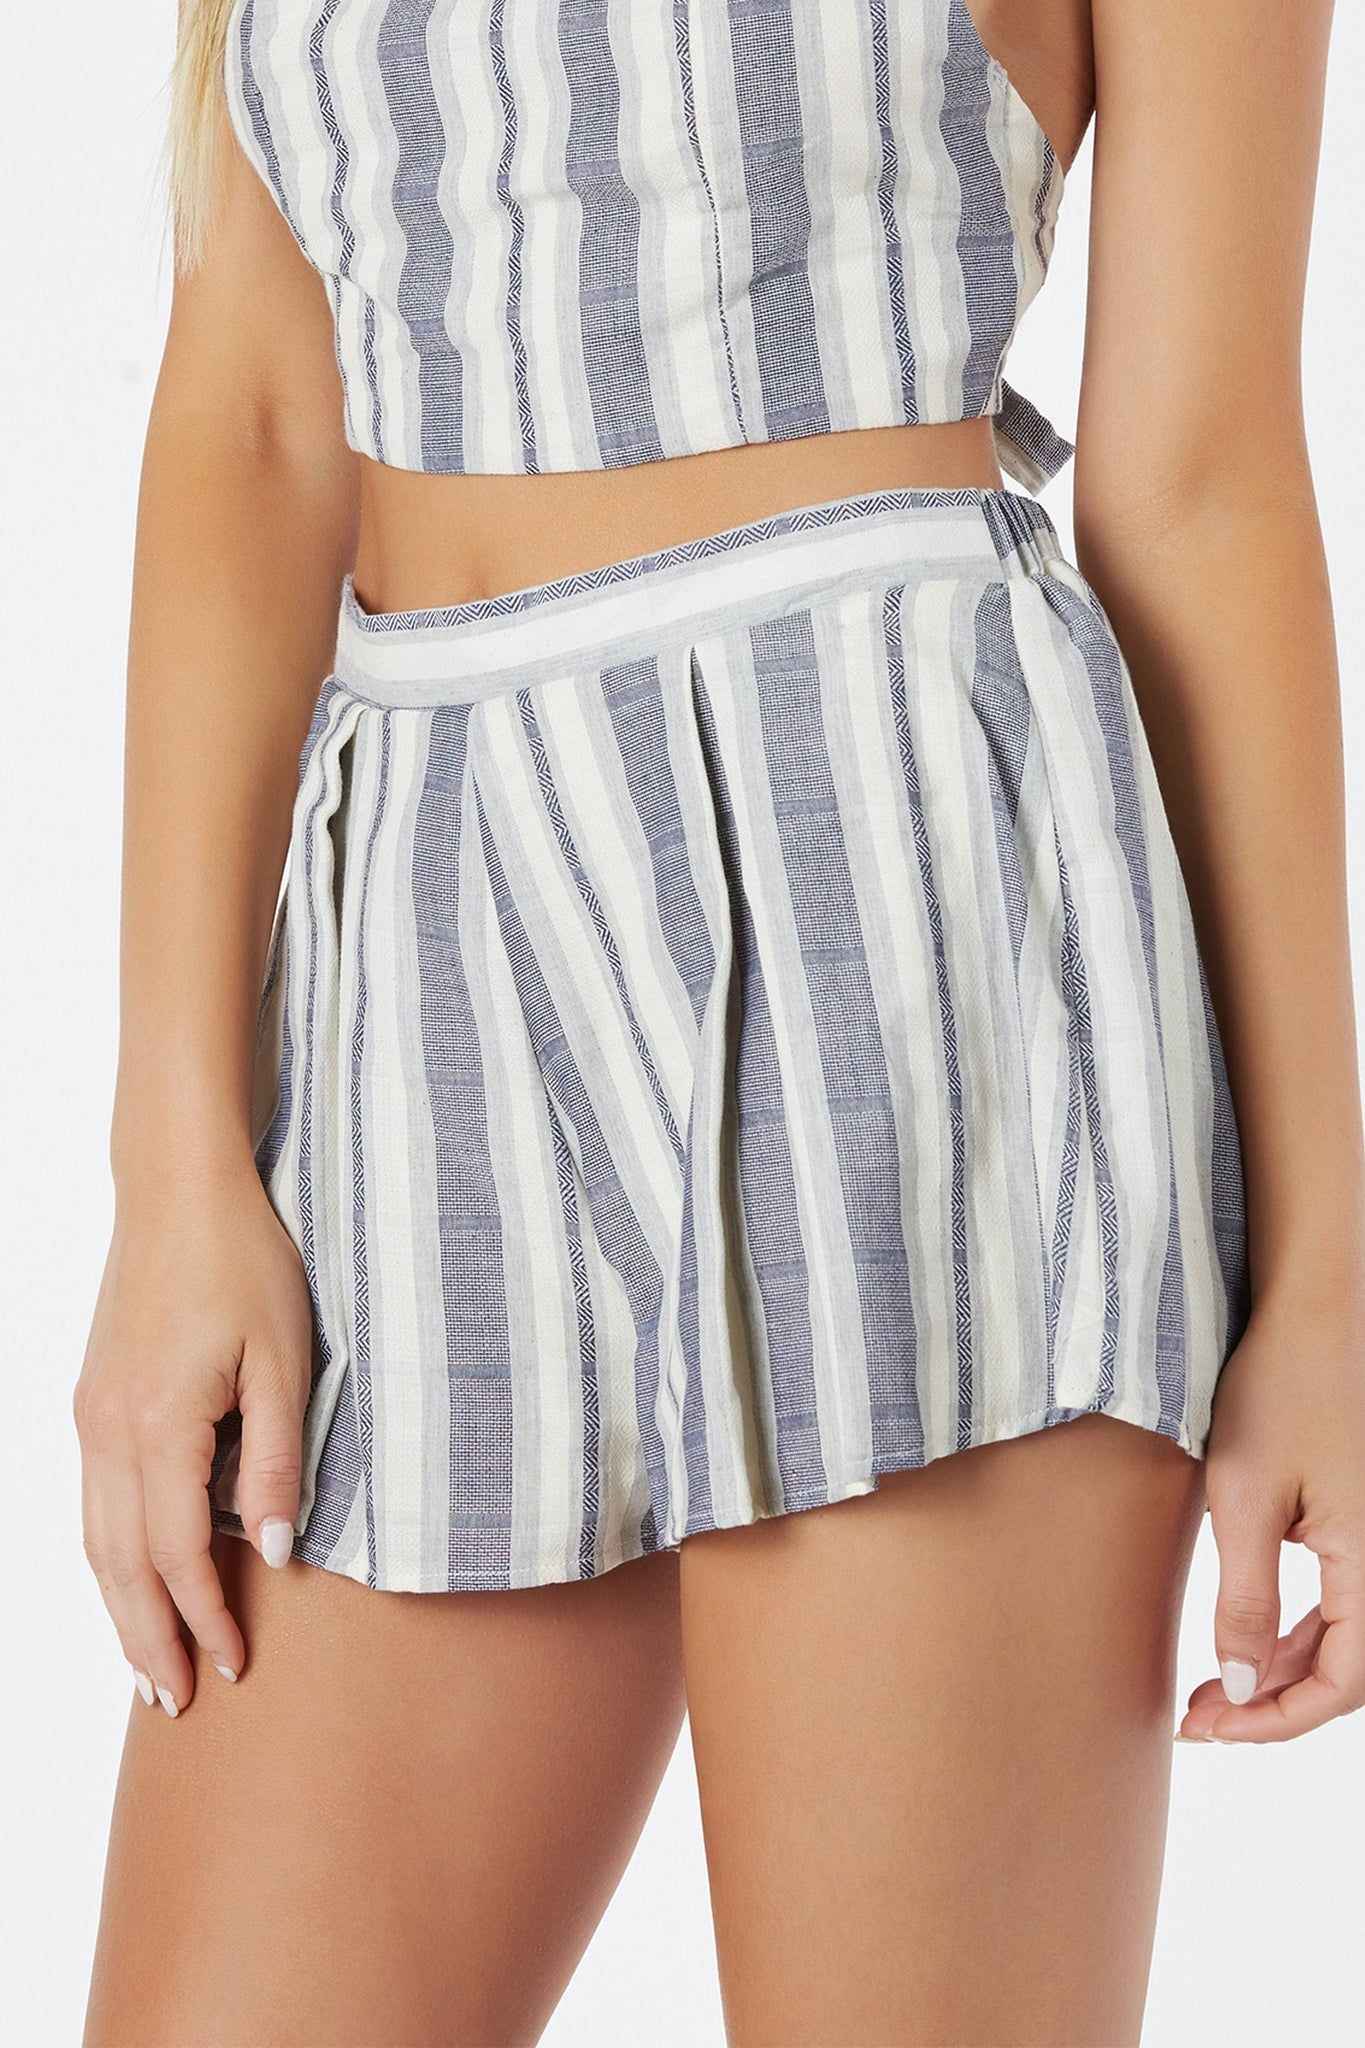 Chic high rise shorts with stripe patterns trhoughout. Fully lined with elasticized waist for comfortable fit.